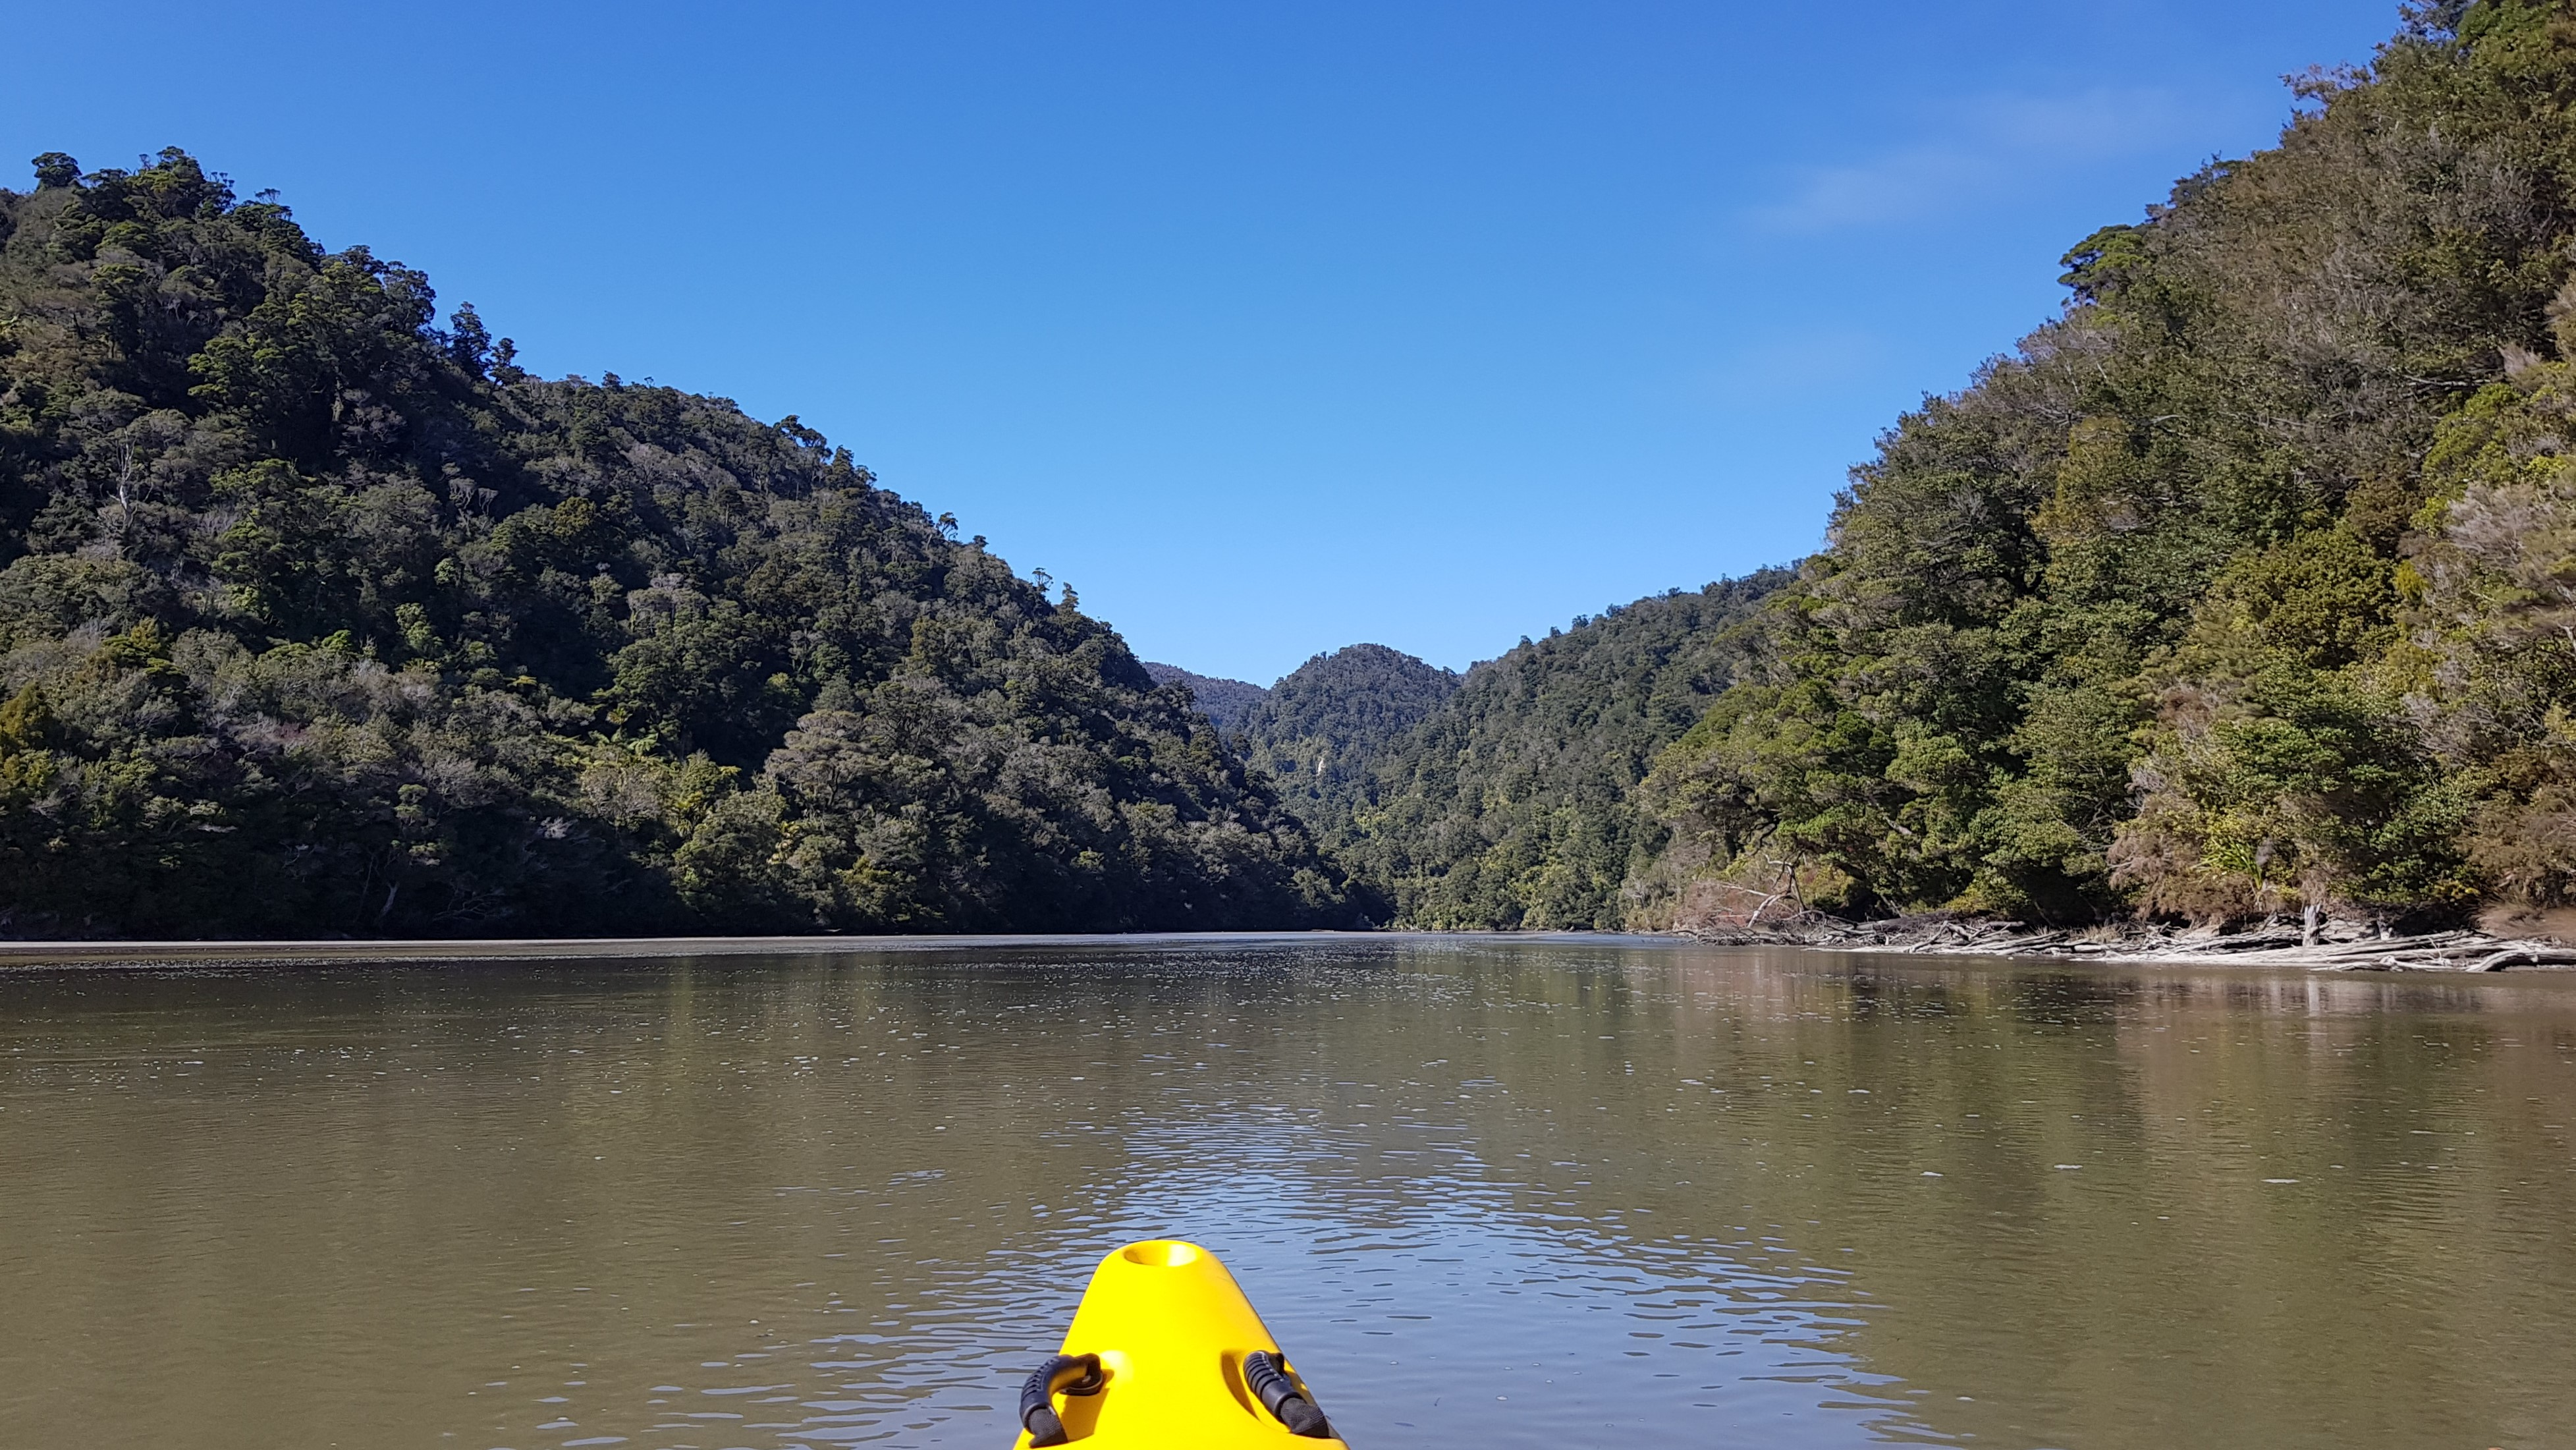 Heading up the Wairoa River